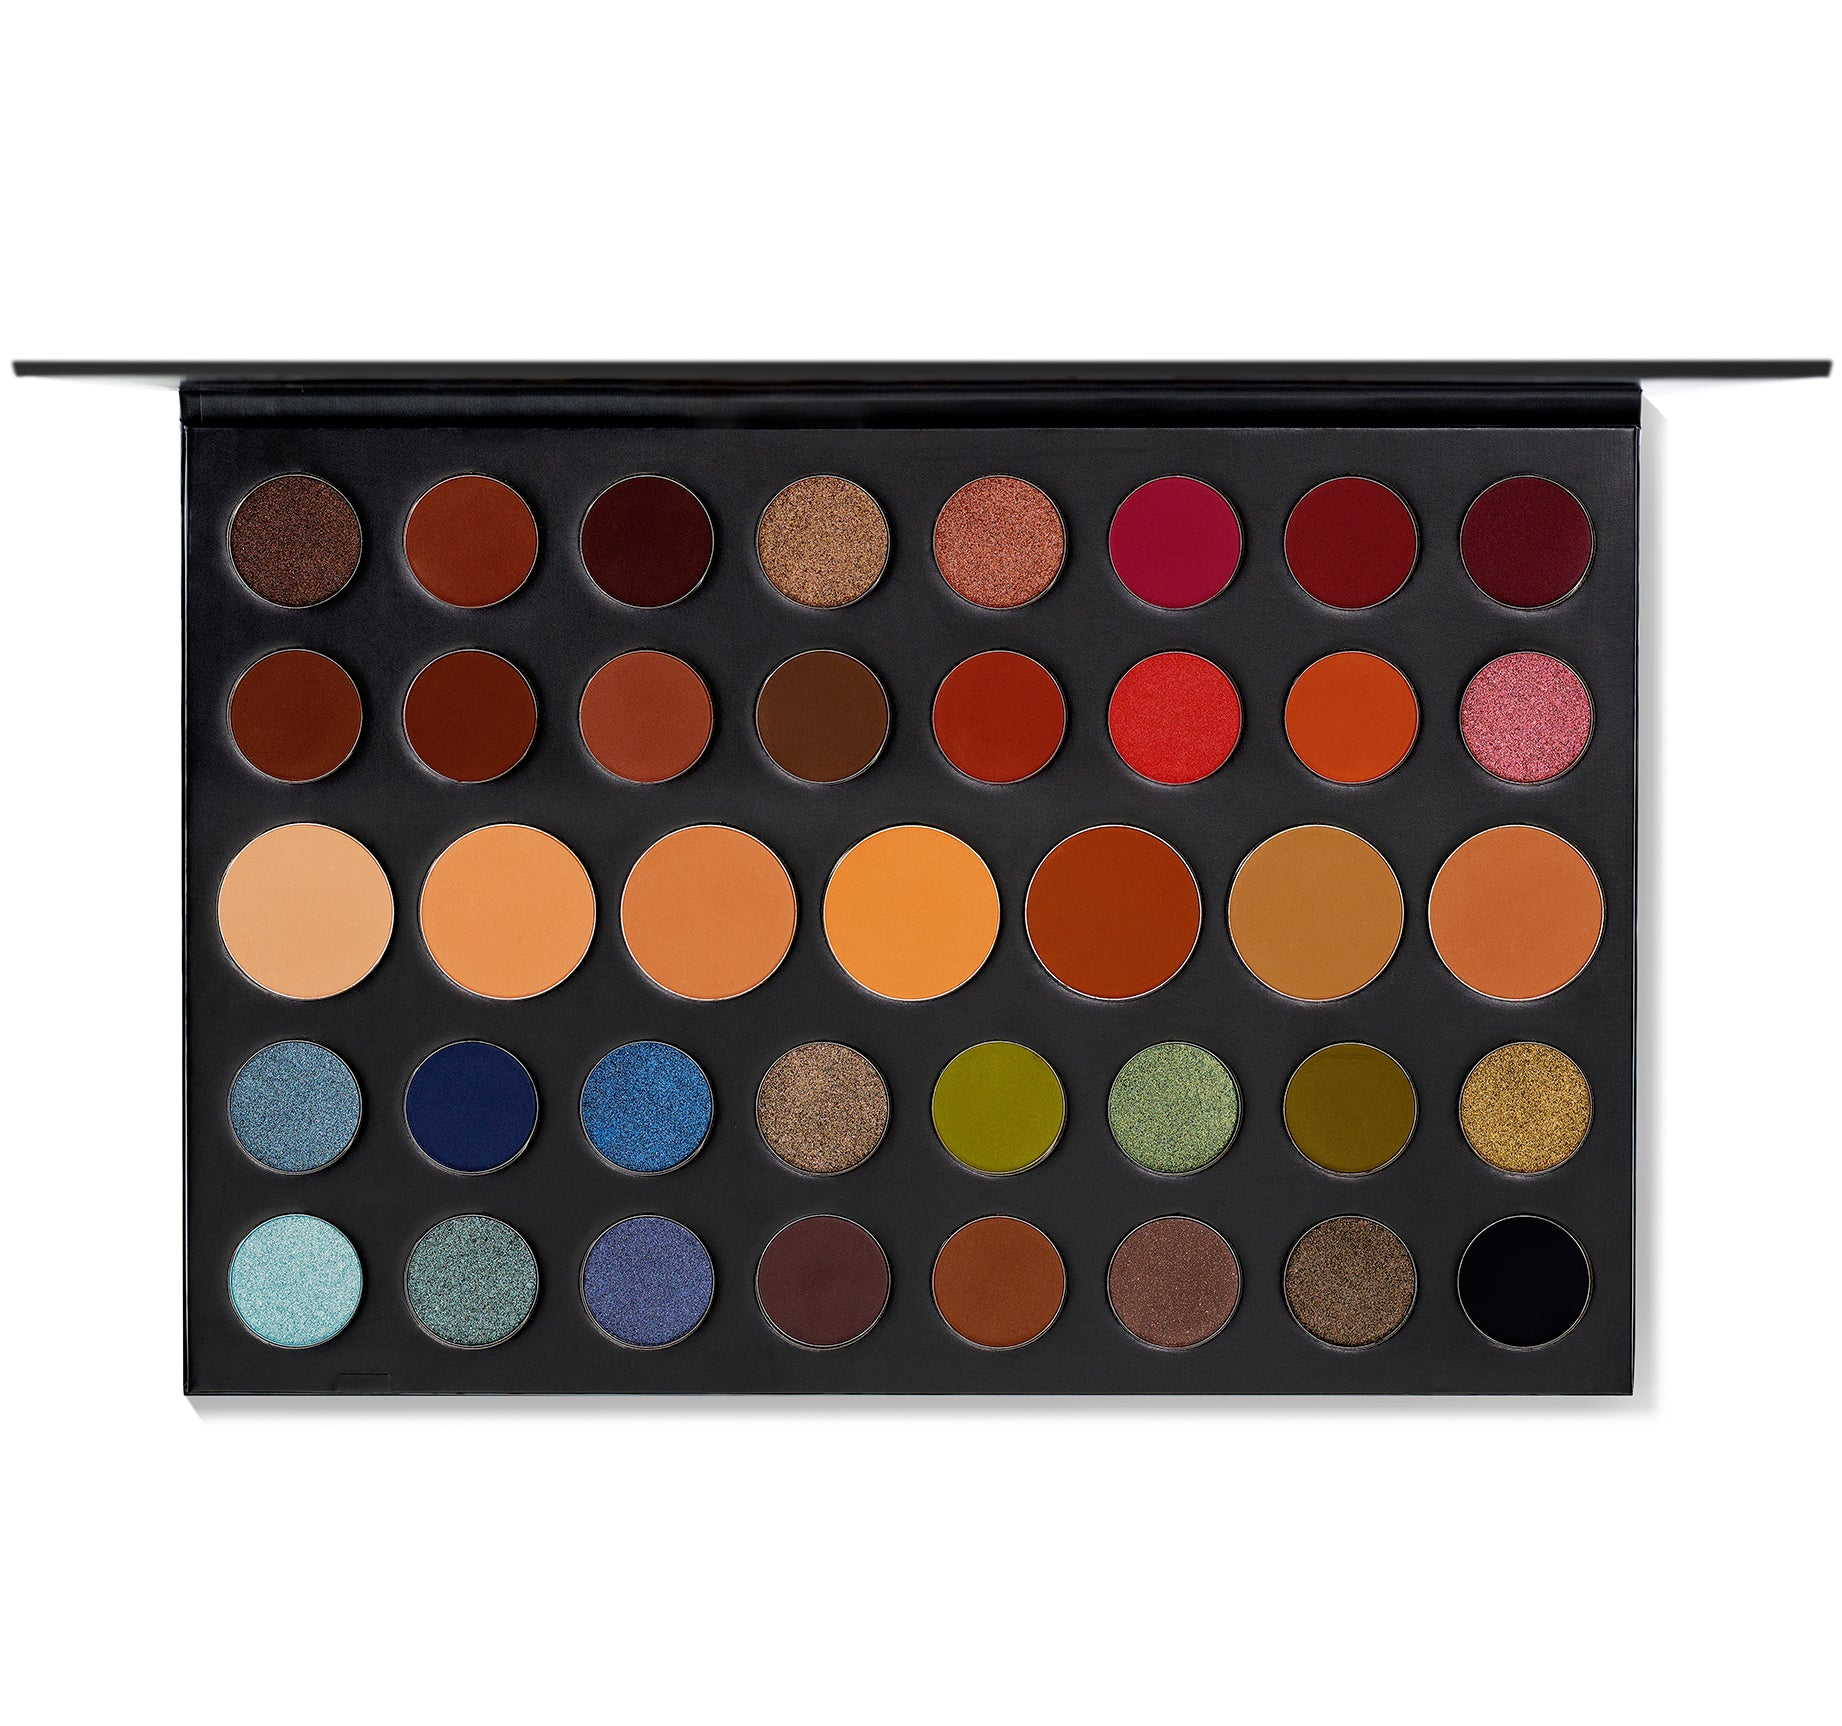 39A DARE TO CREATE ARTISTRY PALETTE, view larger image